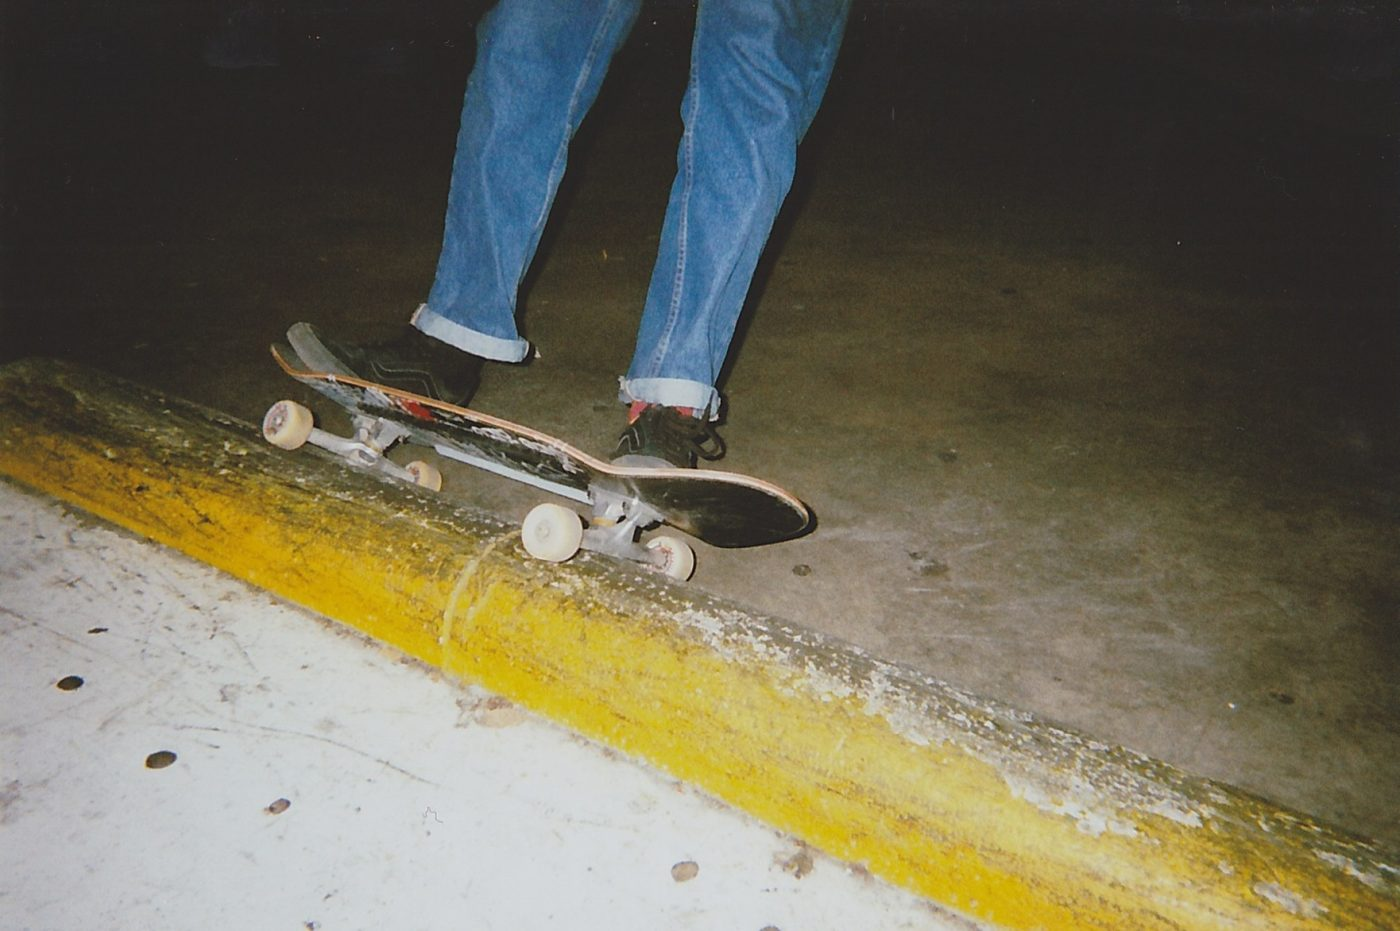 Rick den Ouden, skateboard film-photographer, featured on Death Before Digital